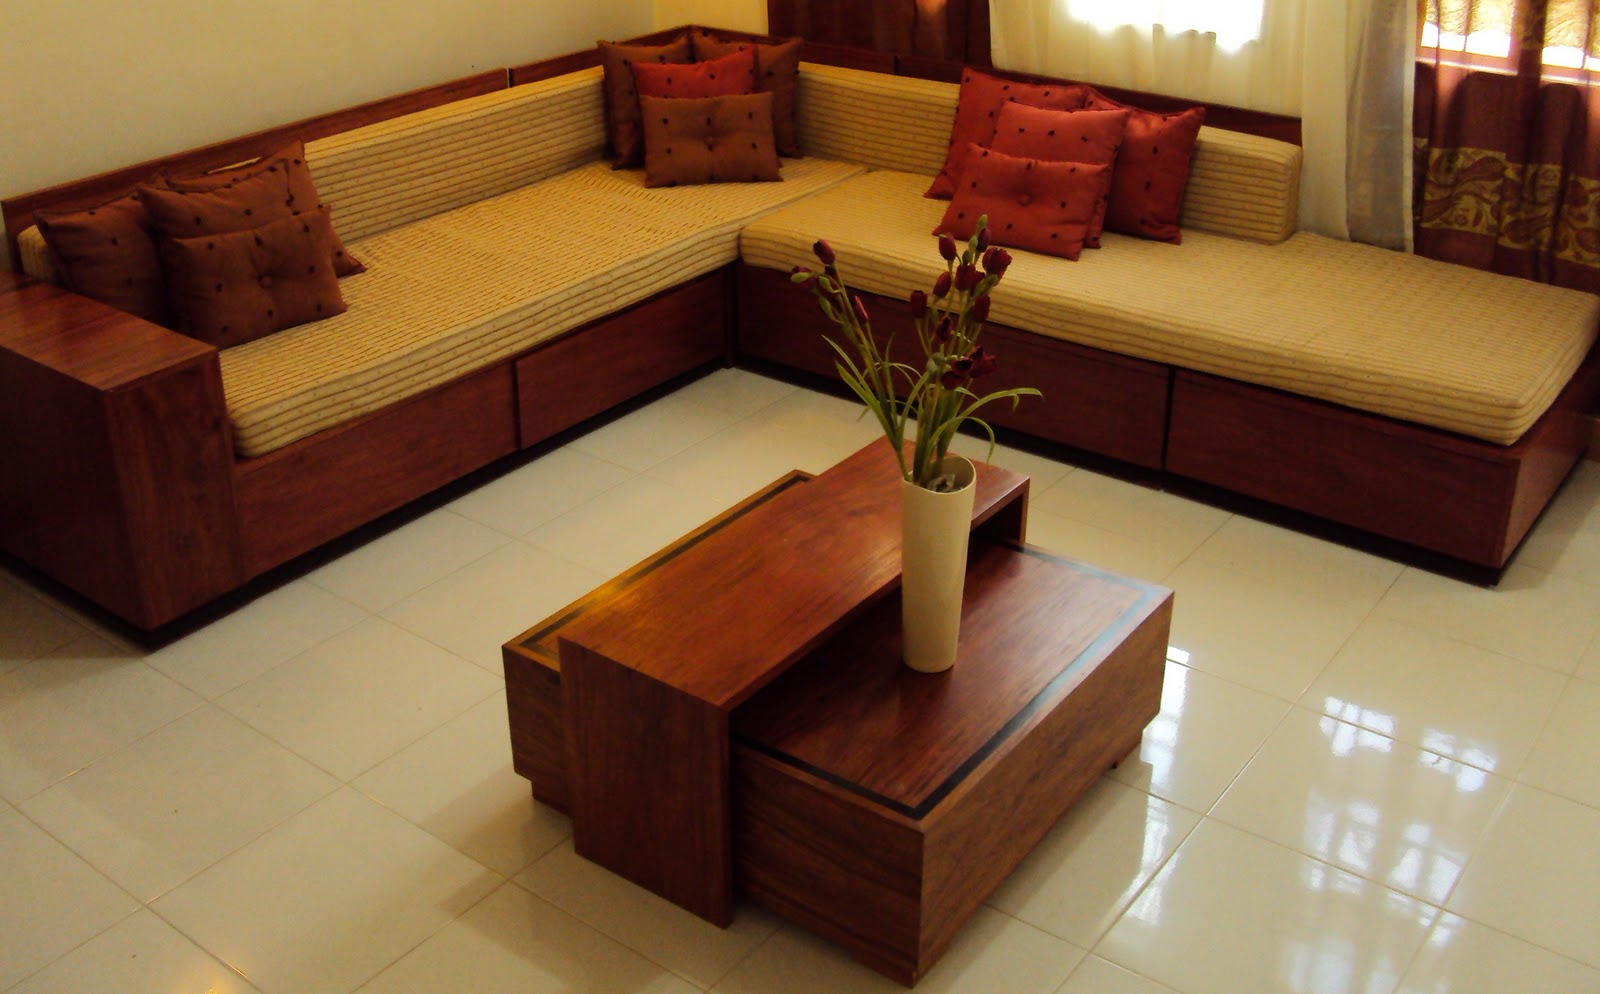 Narra Cleopatra Sala Set Philippines Olx Philippines Wooden Sala Set Second Hand Sofa Set In